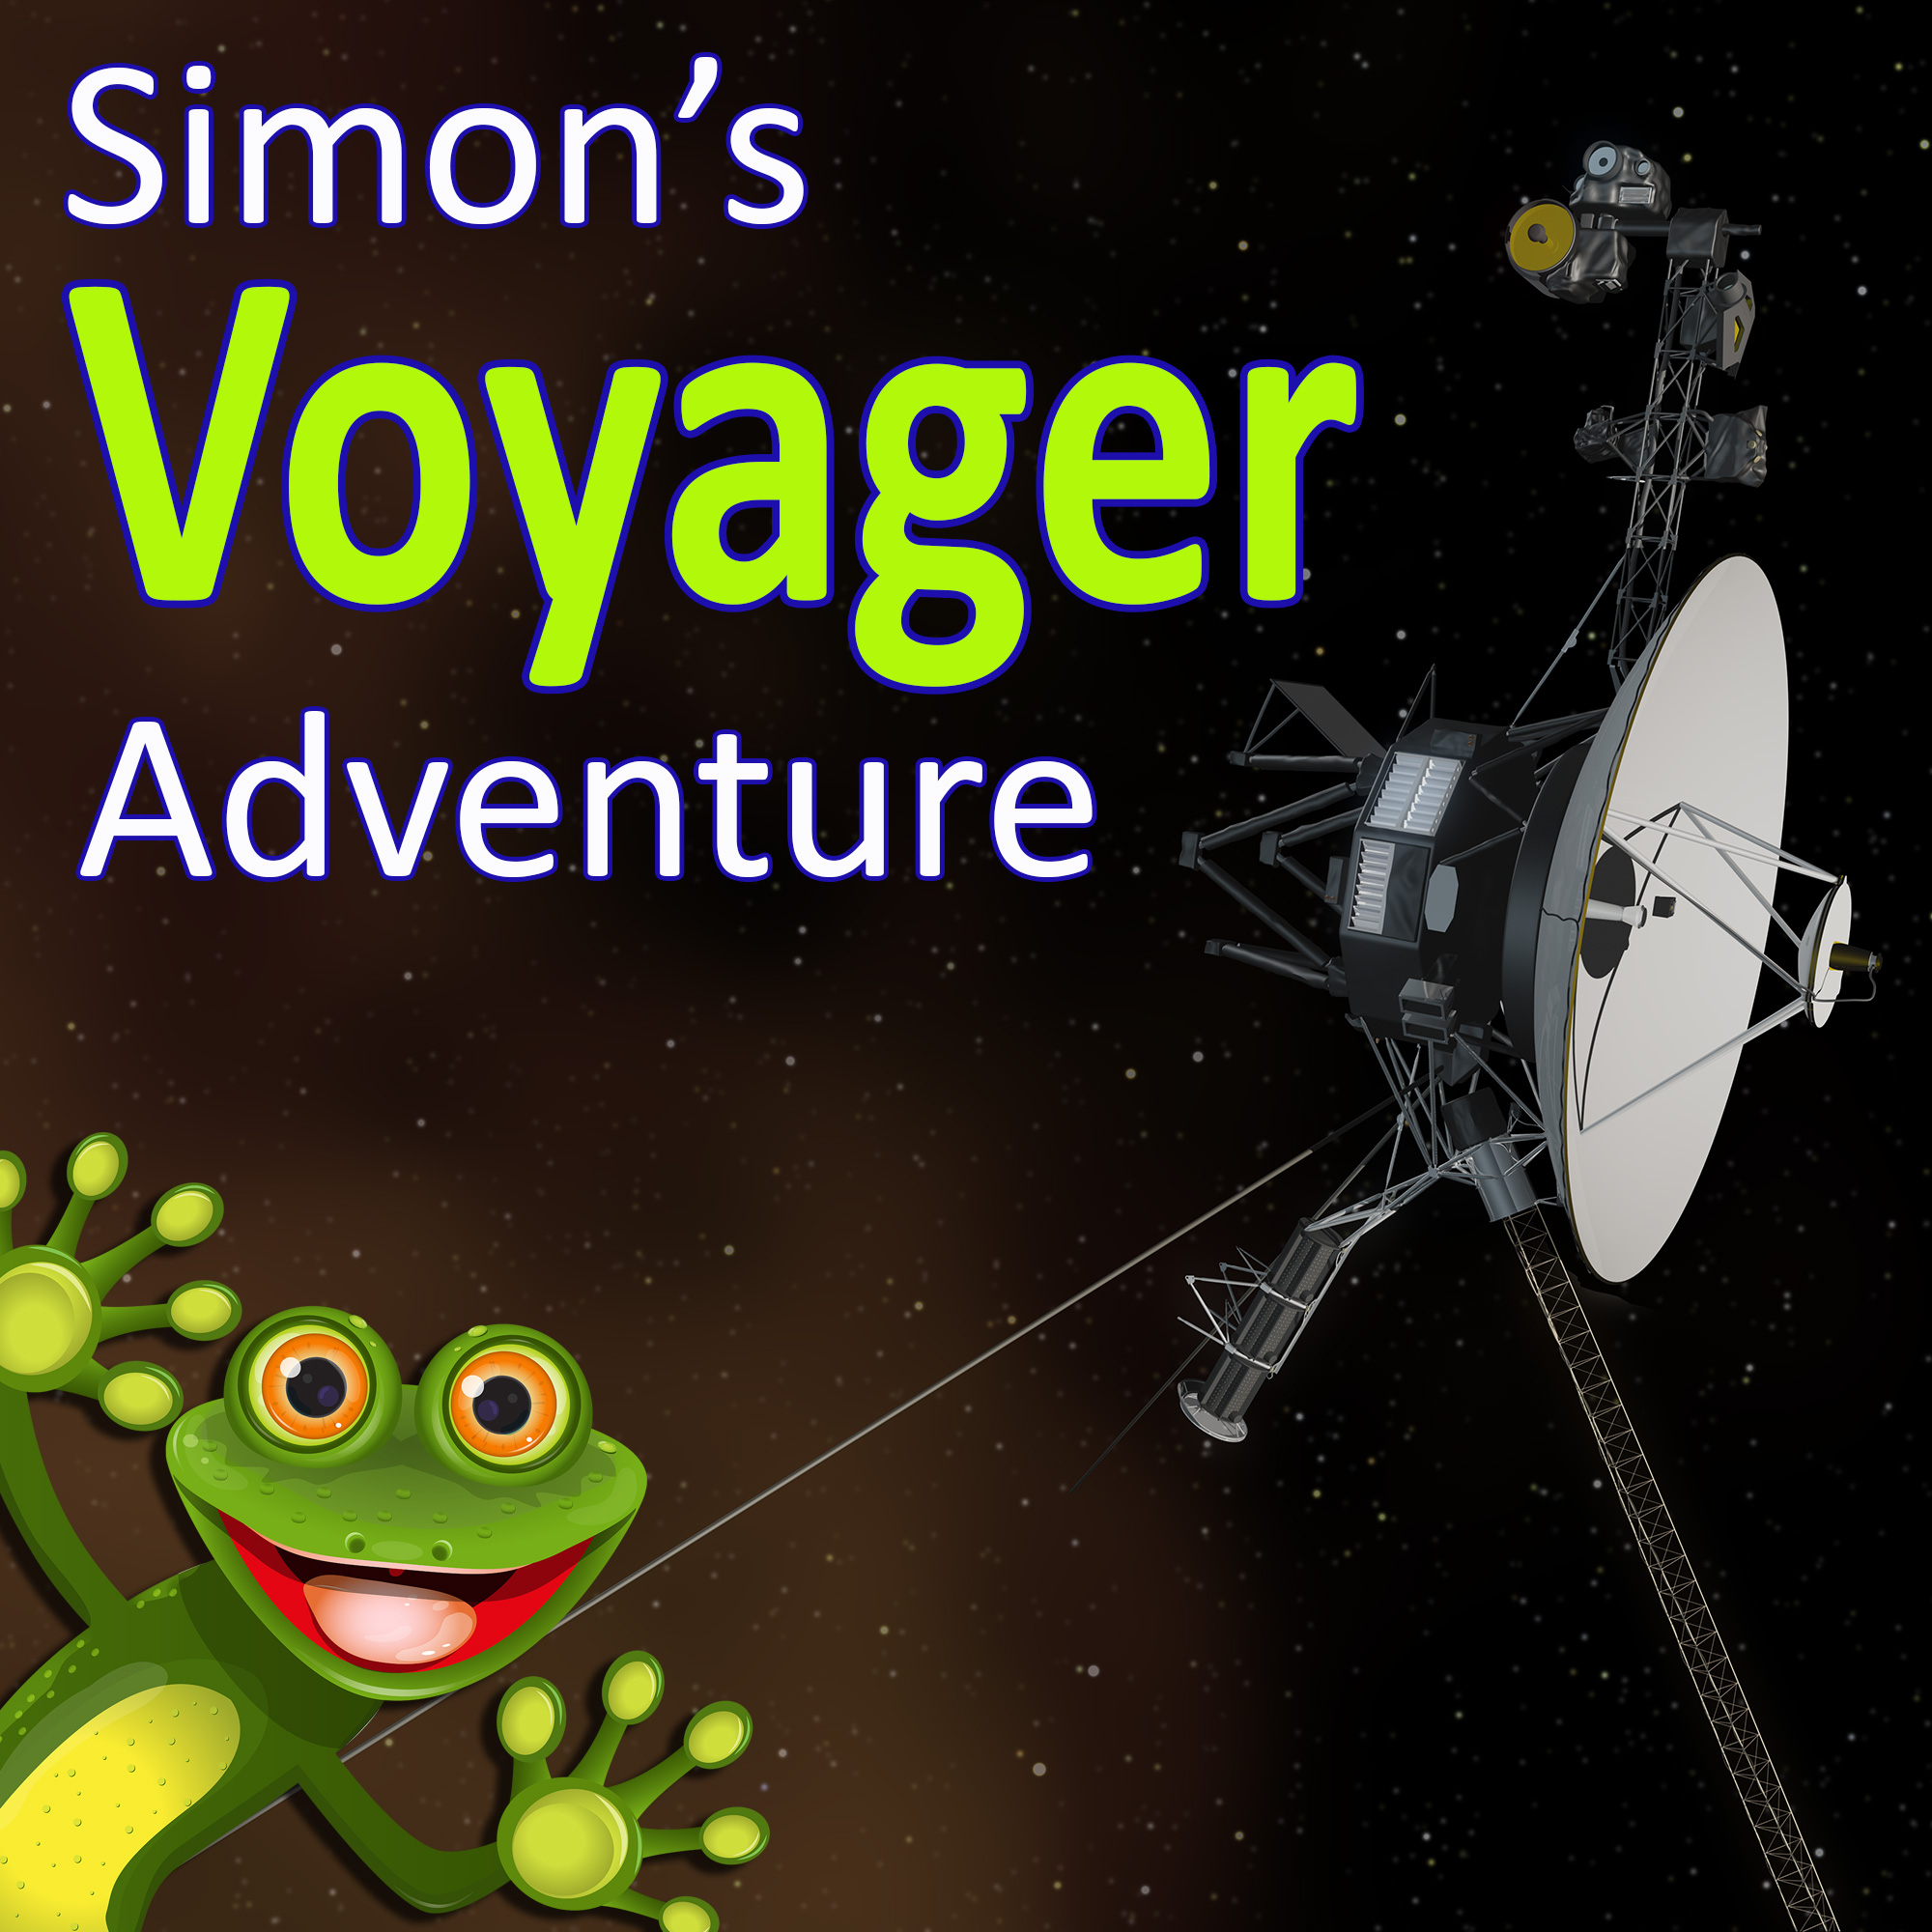 Simon's Voyager Adventure